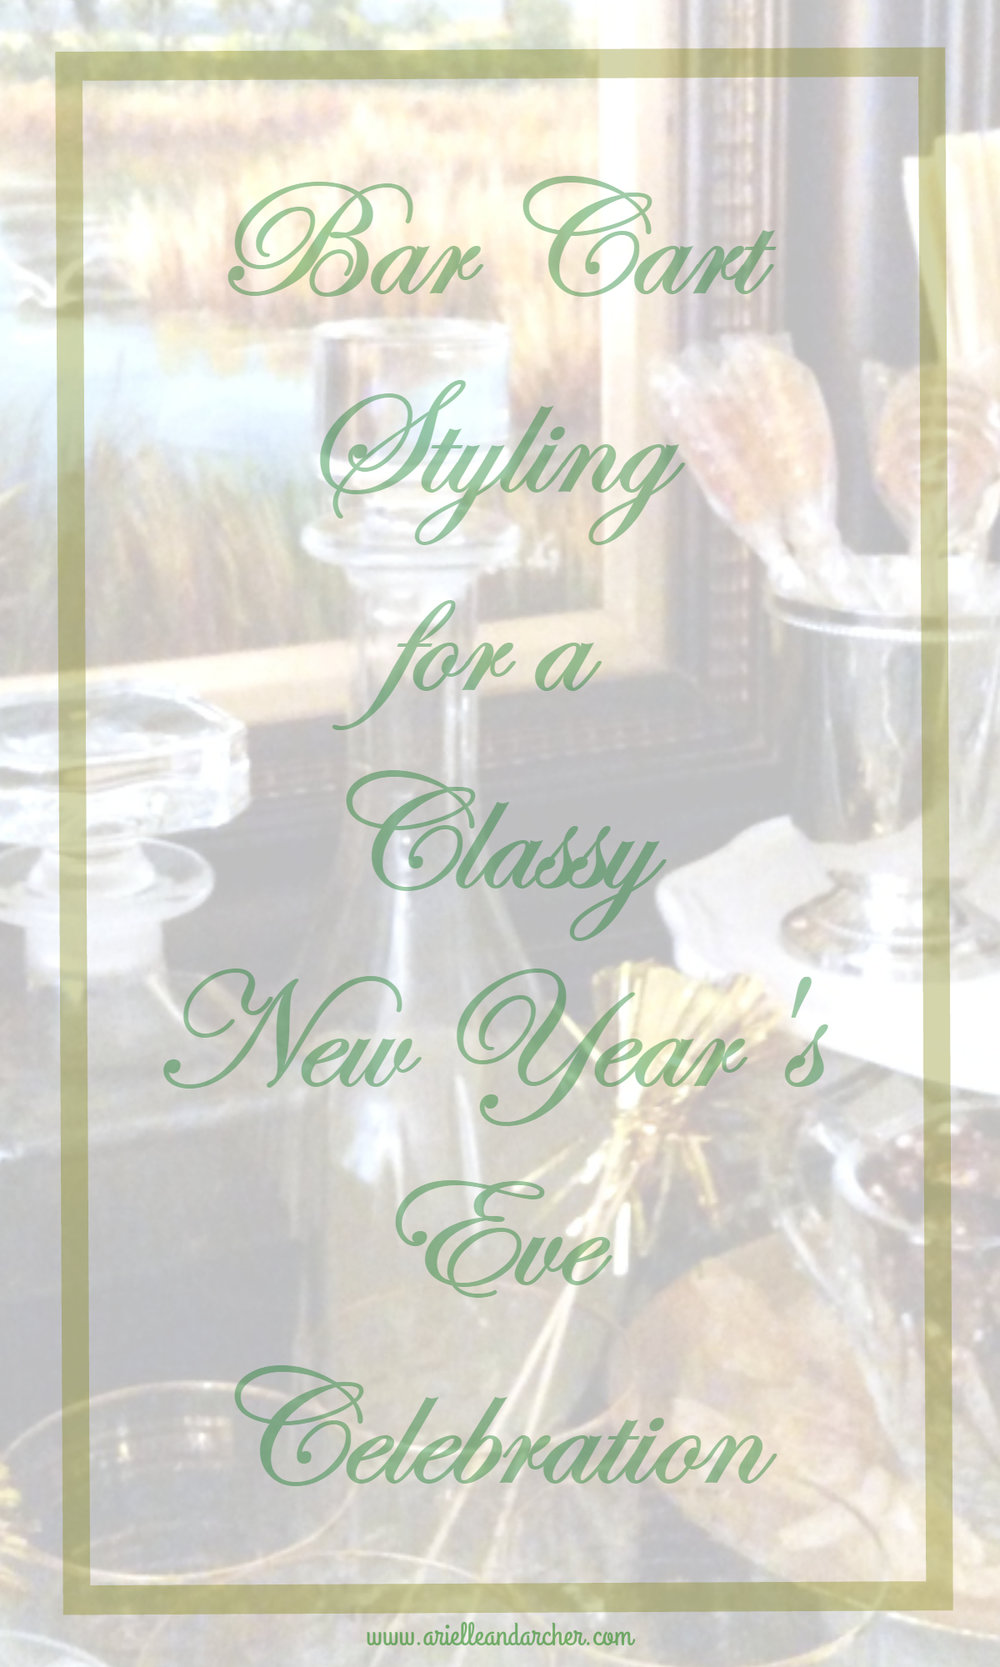 Bar Cart Styling and Ideas for a Classy New Year's Eve Celebration